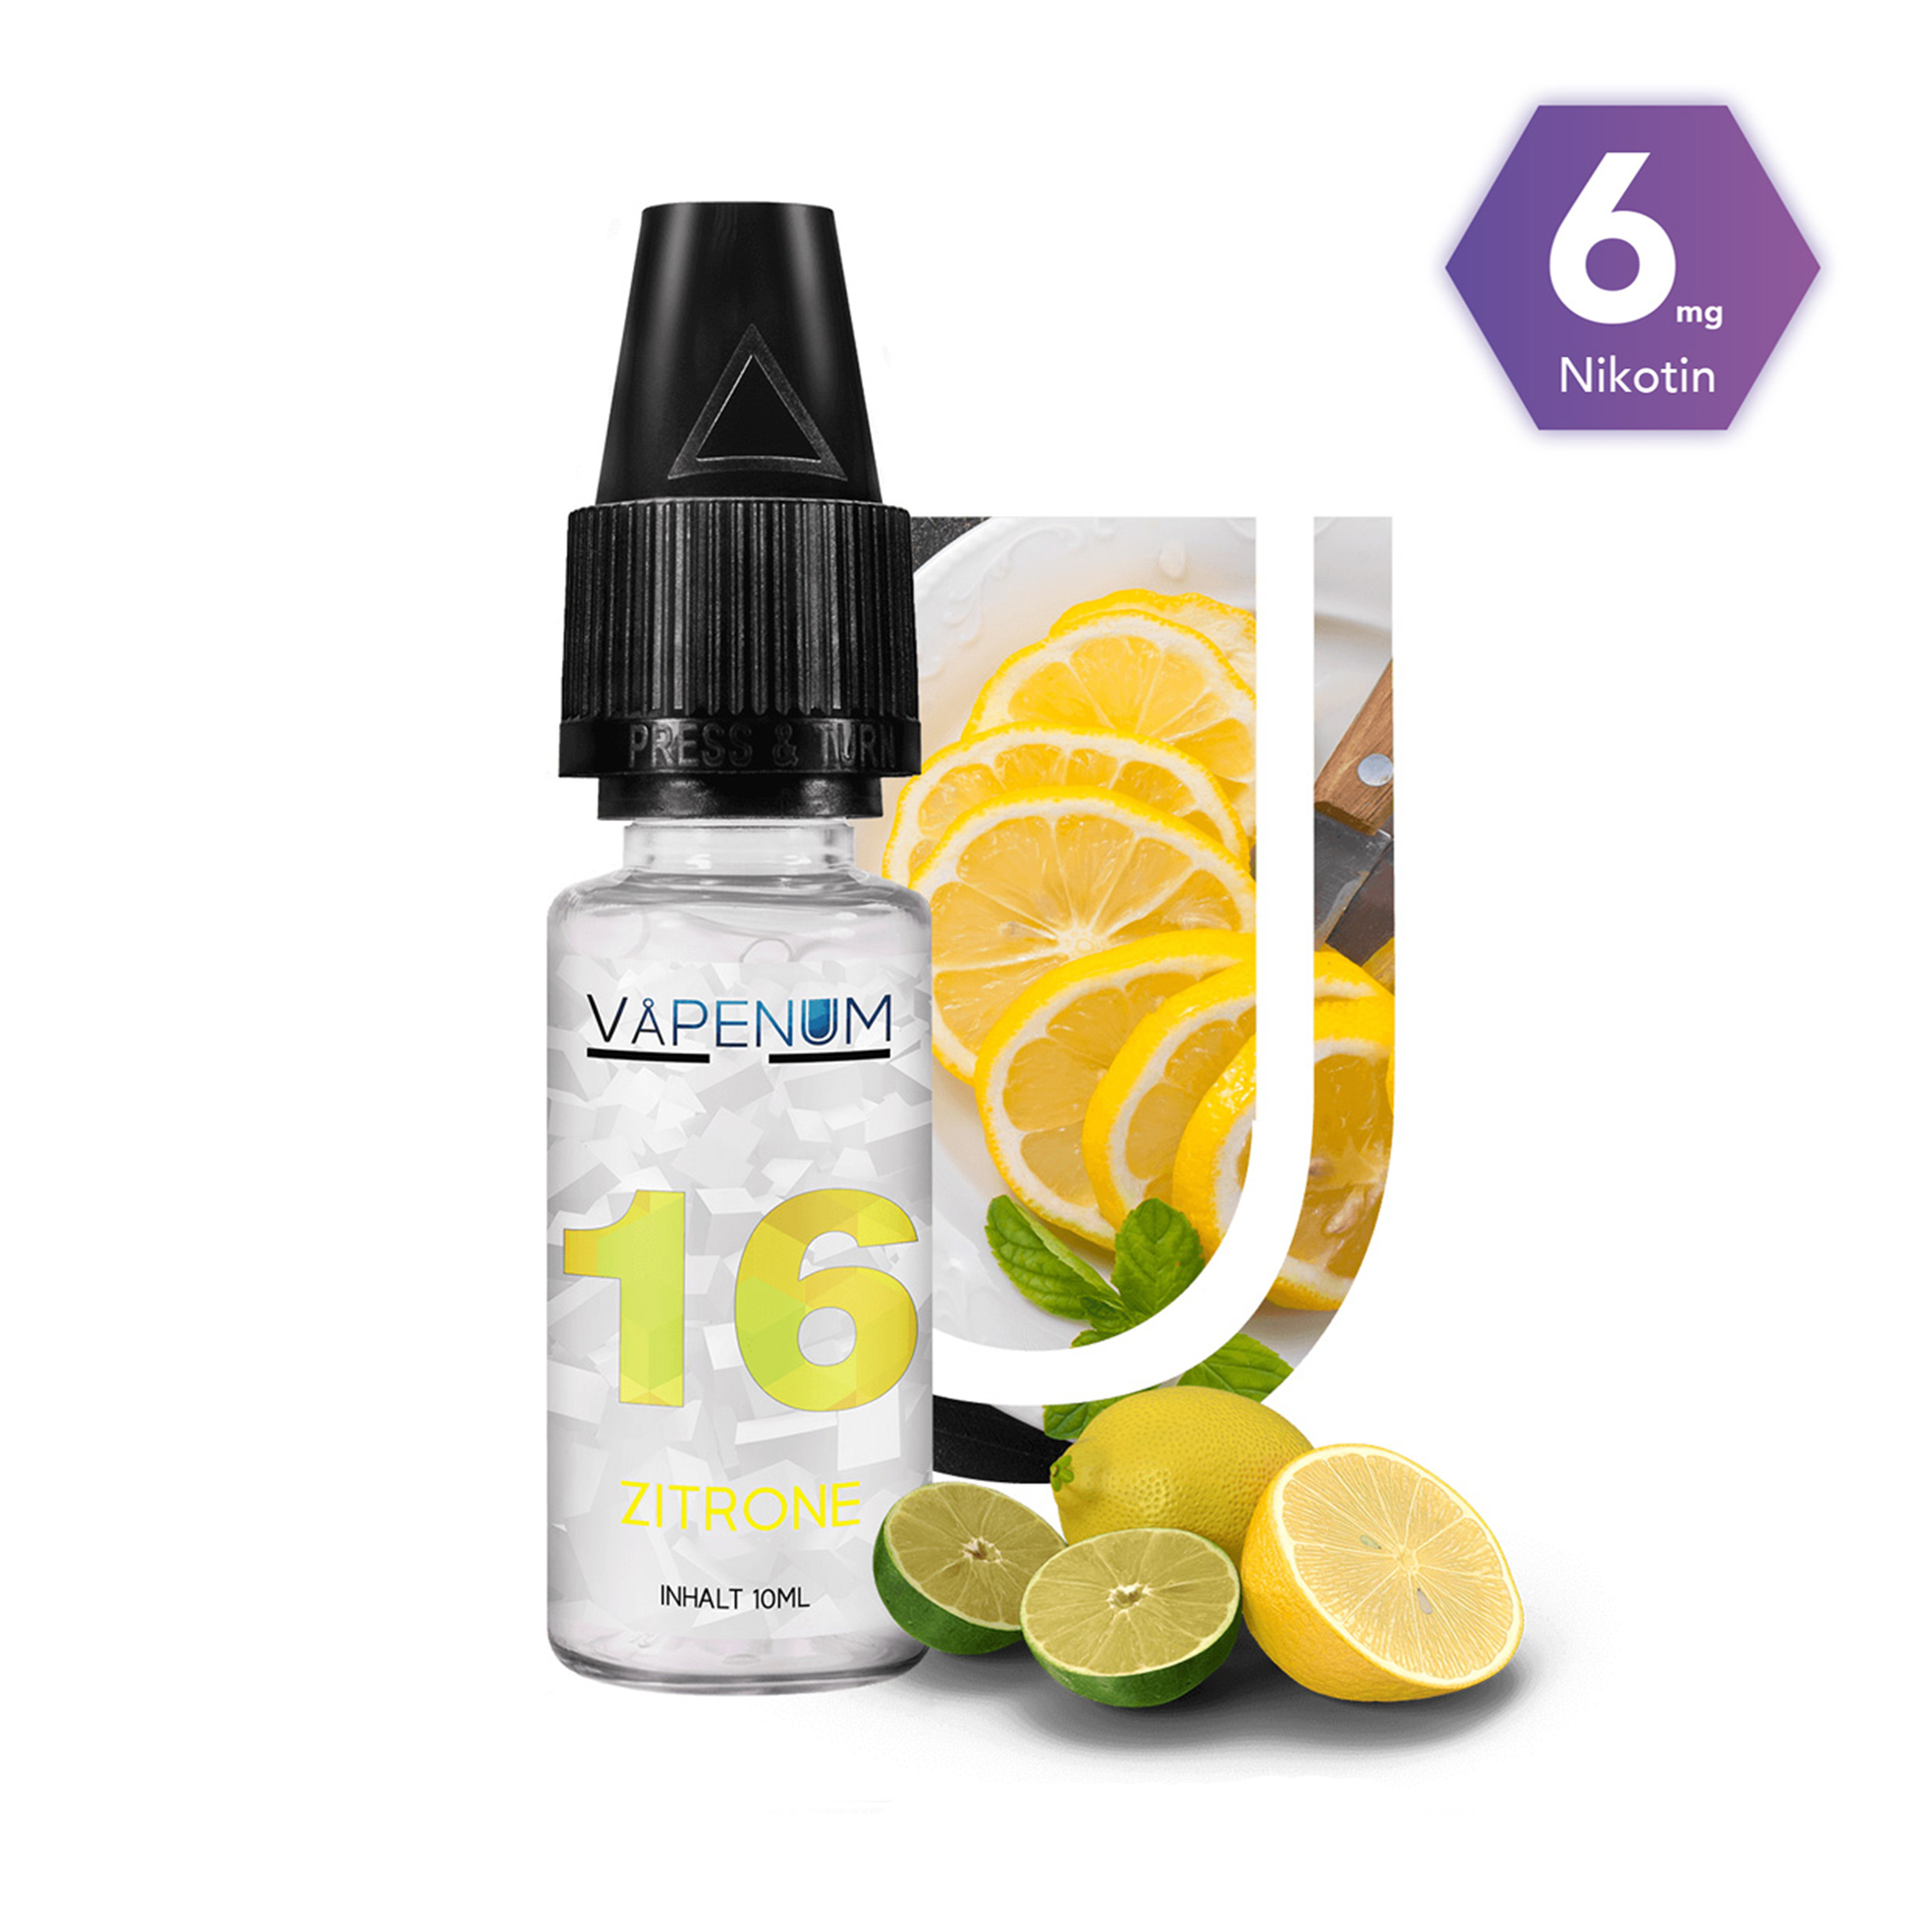 16 - Zitrone Liquid by Vapenum 6mg